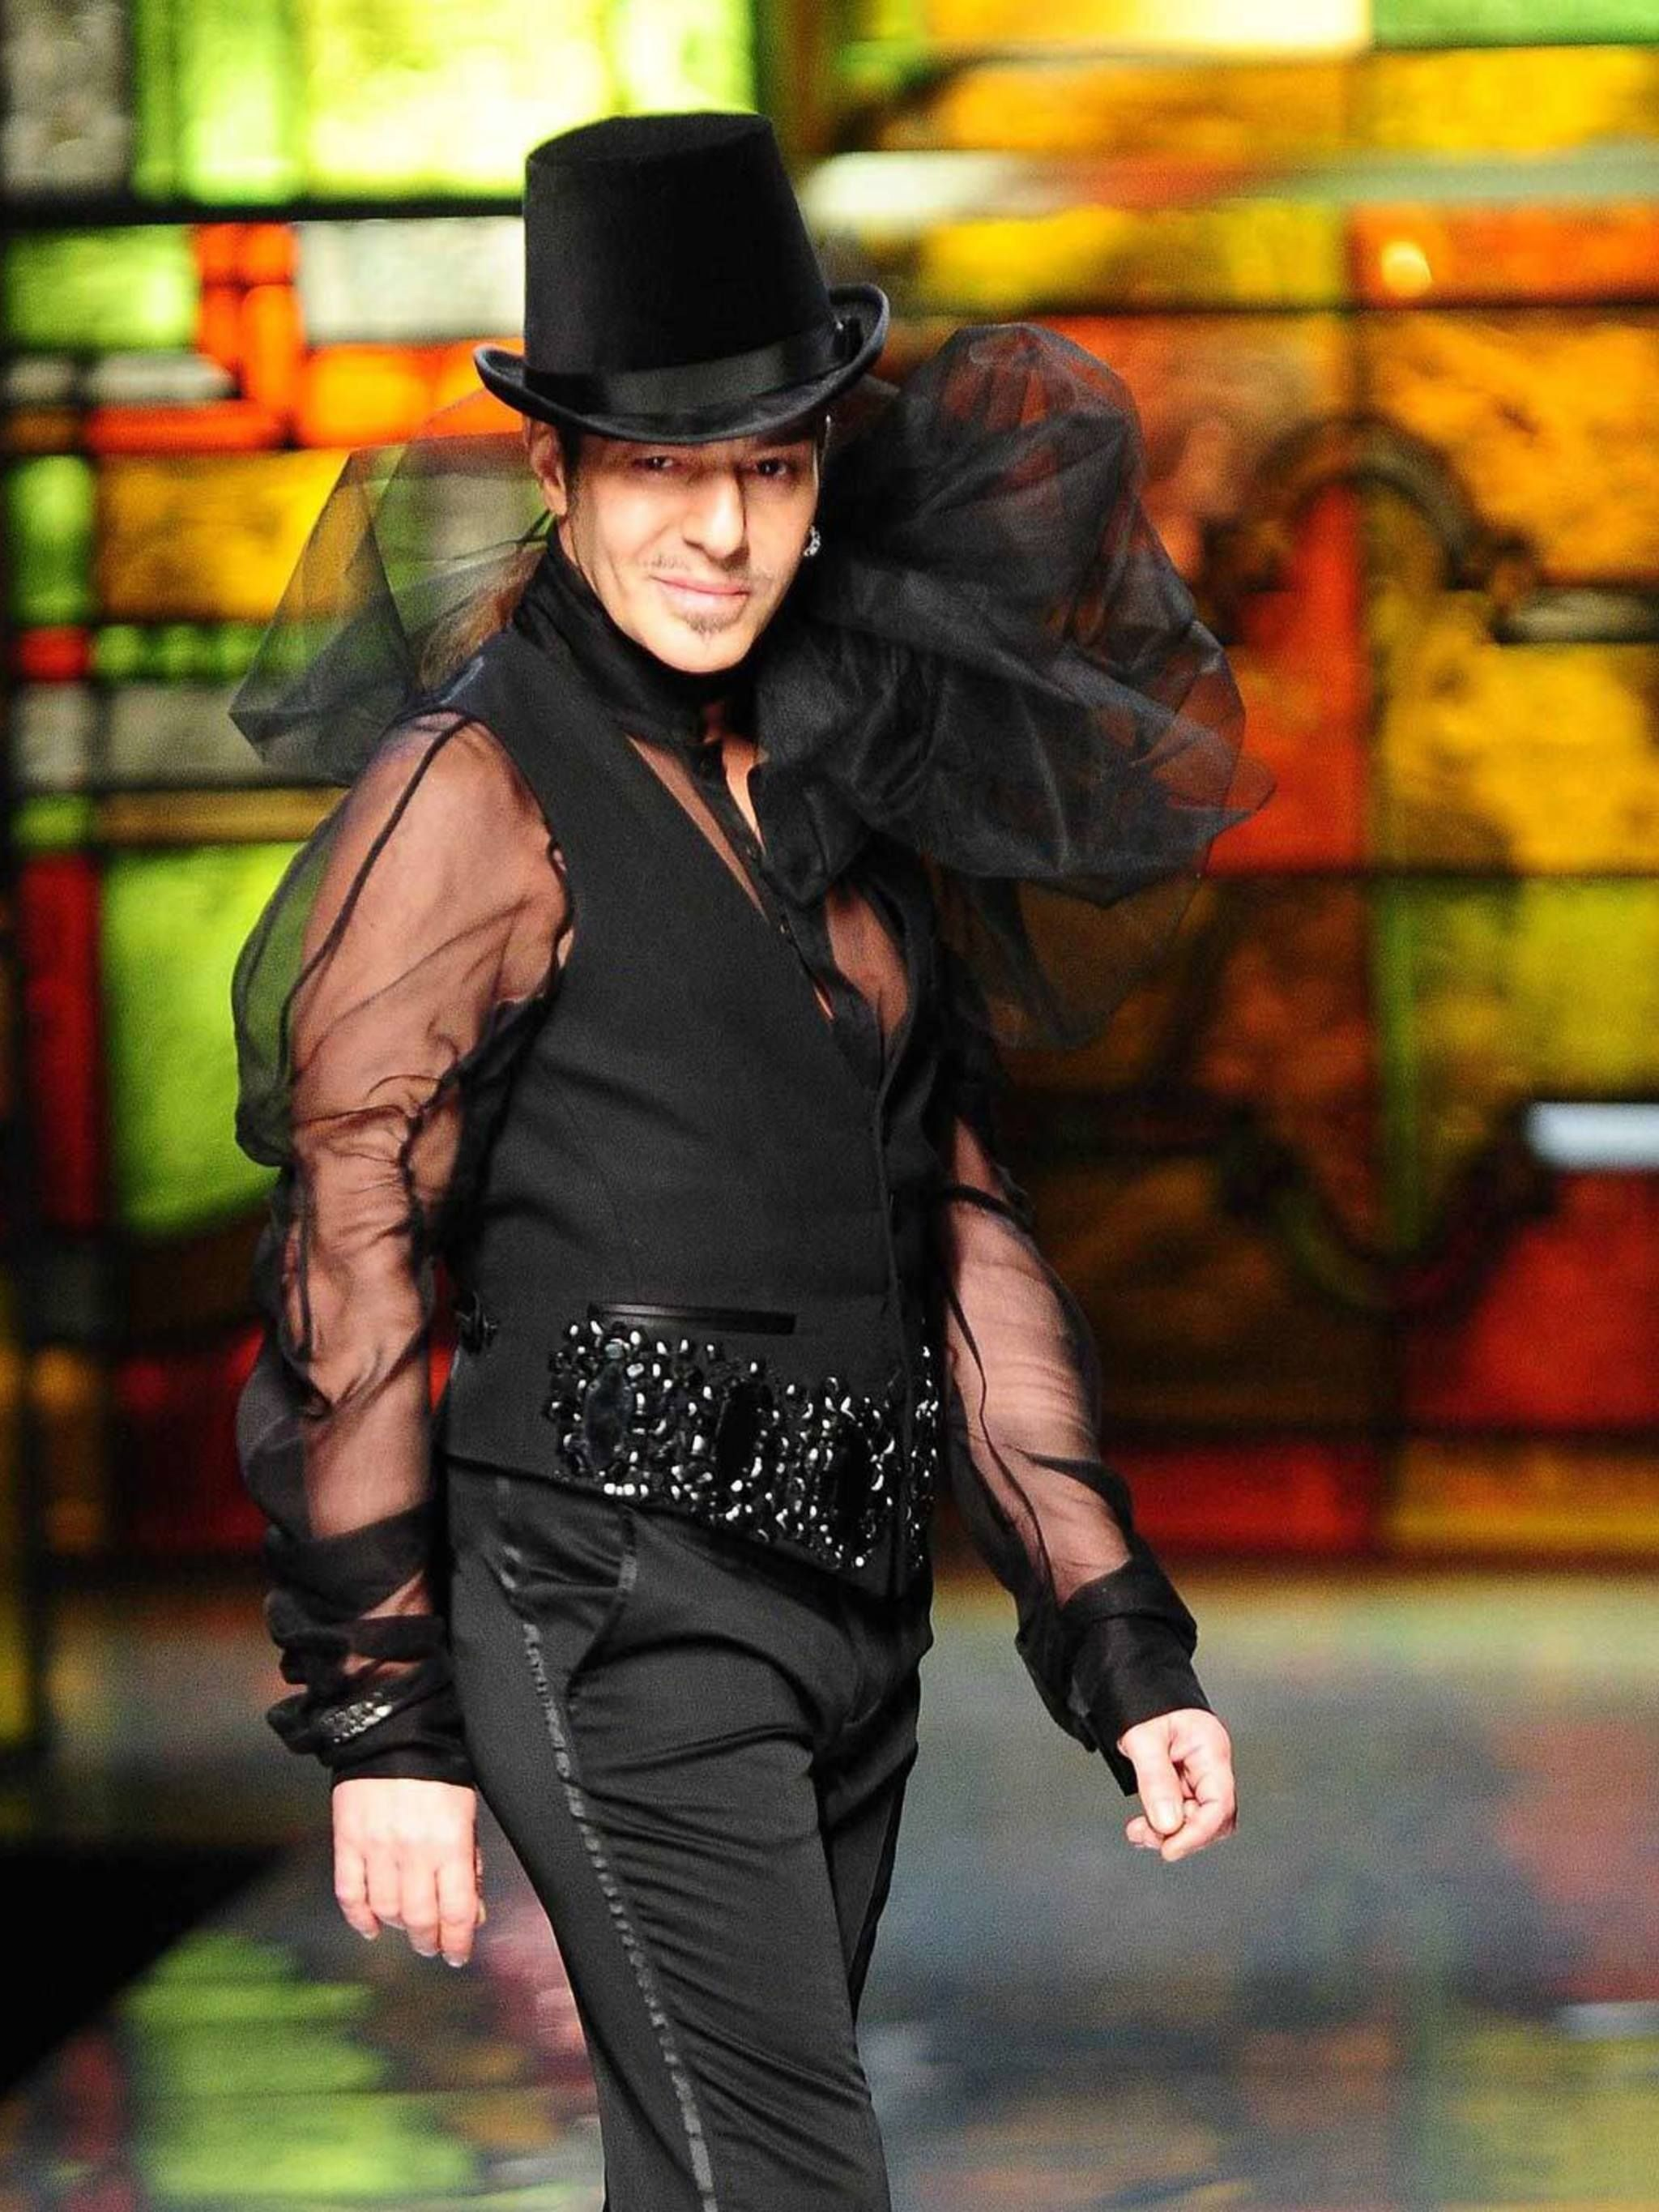 Galliano john interview in vanity fair forecast to wear for autumn in 2019